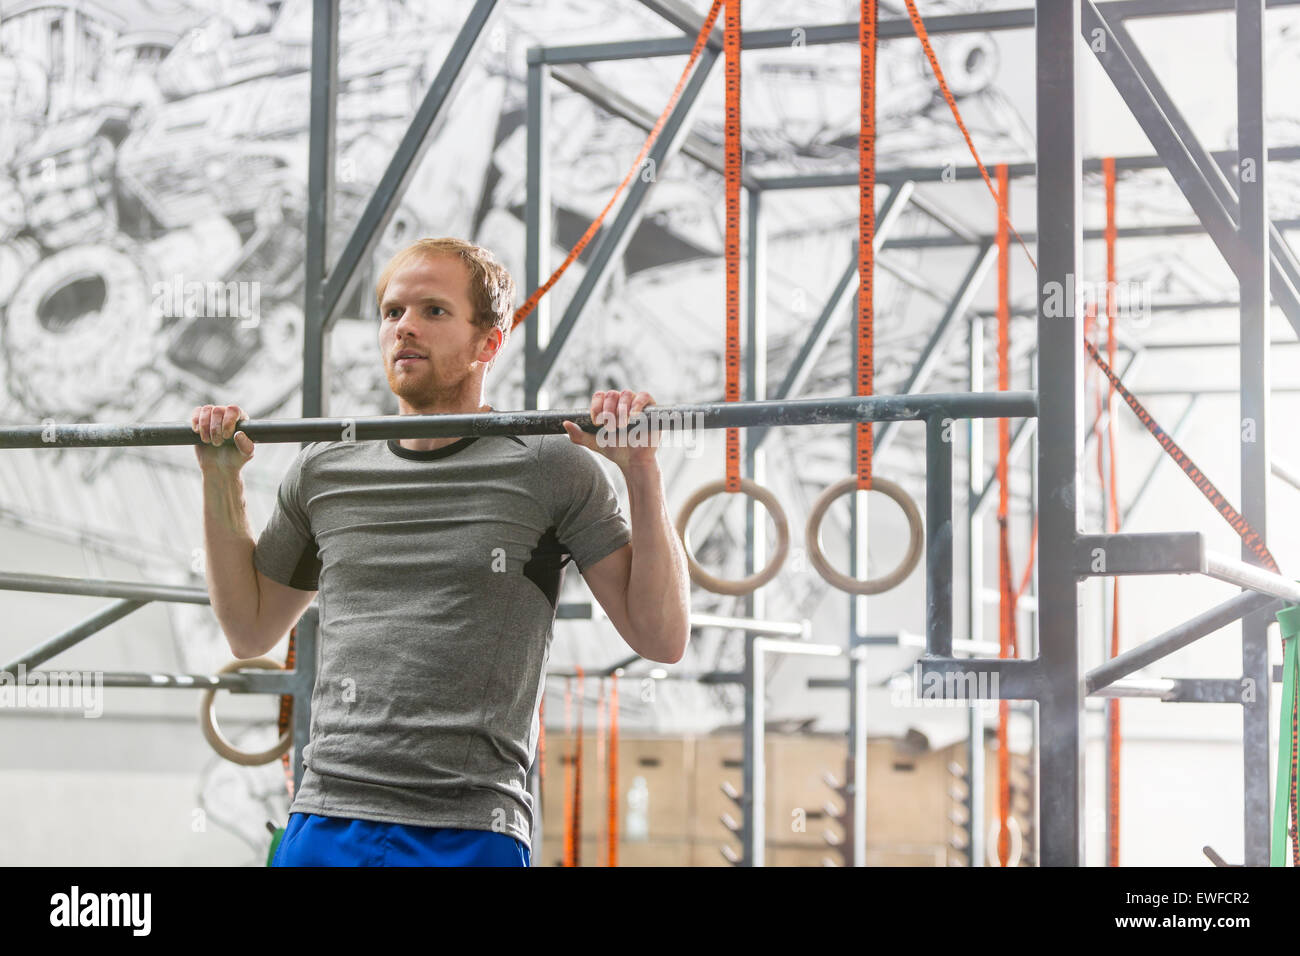 Confident man doing chin-ups in crossfit gym - Stock Image